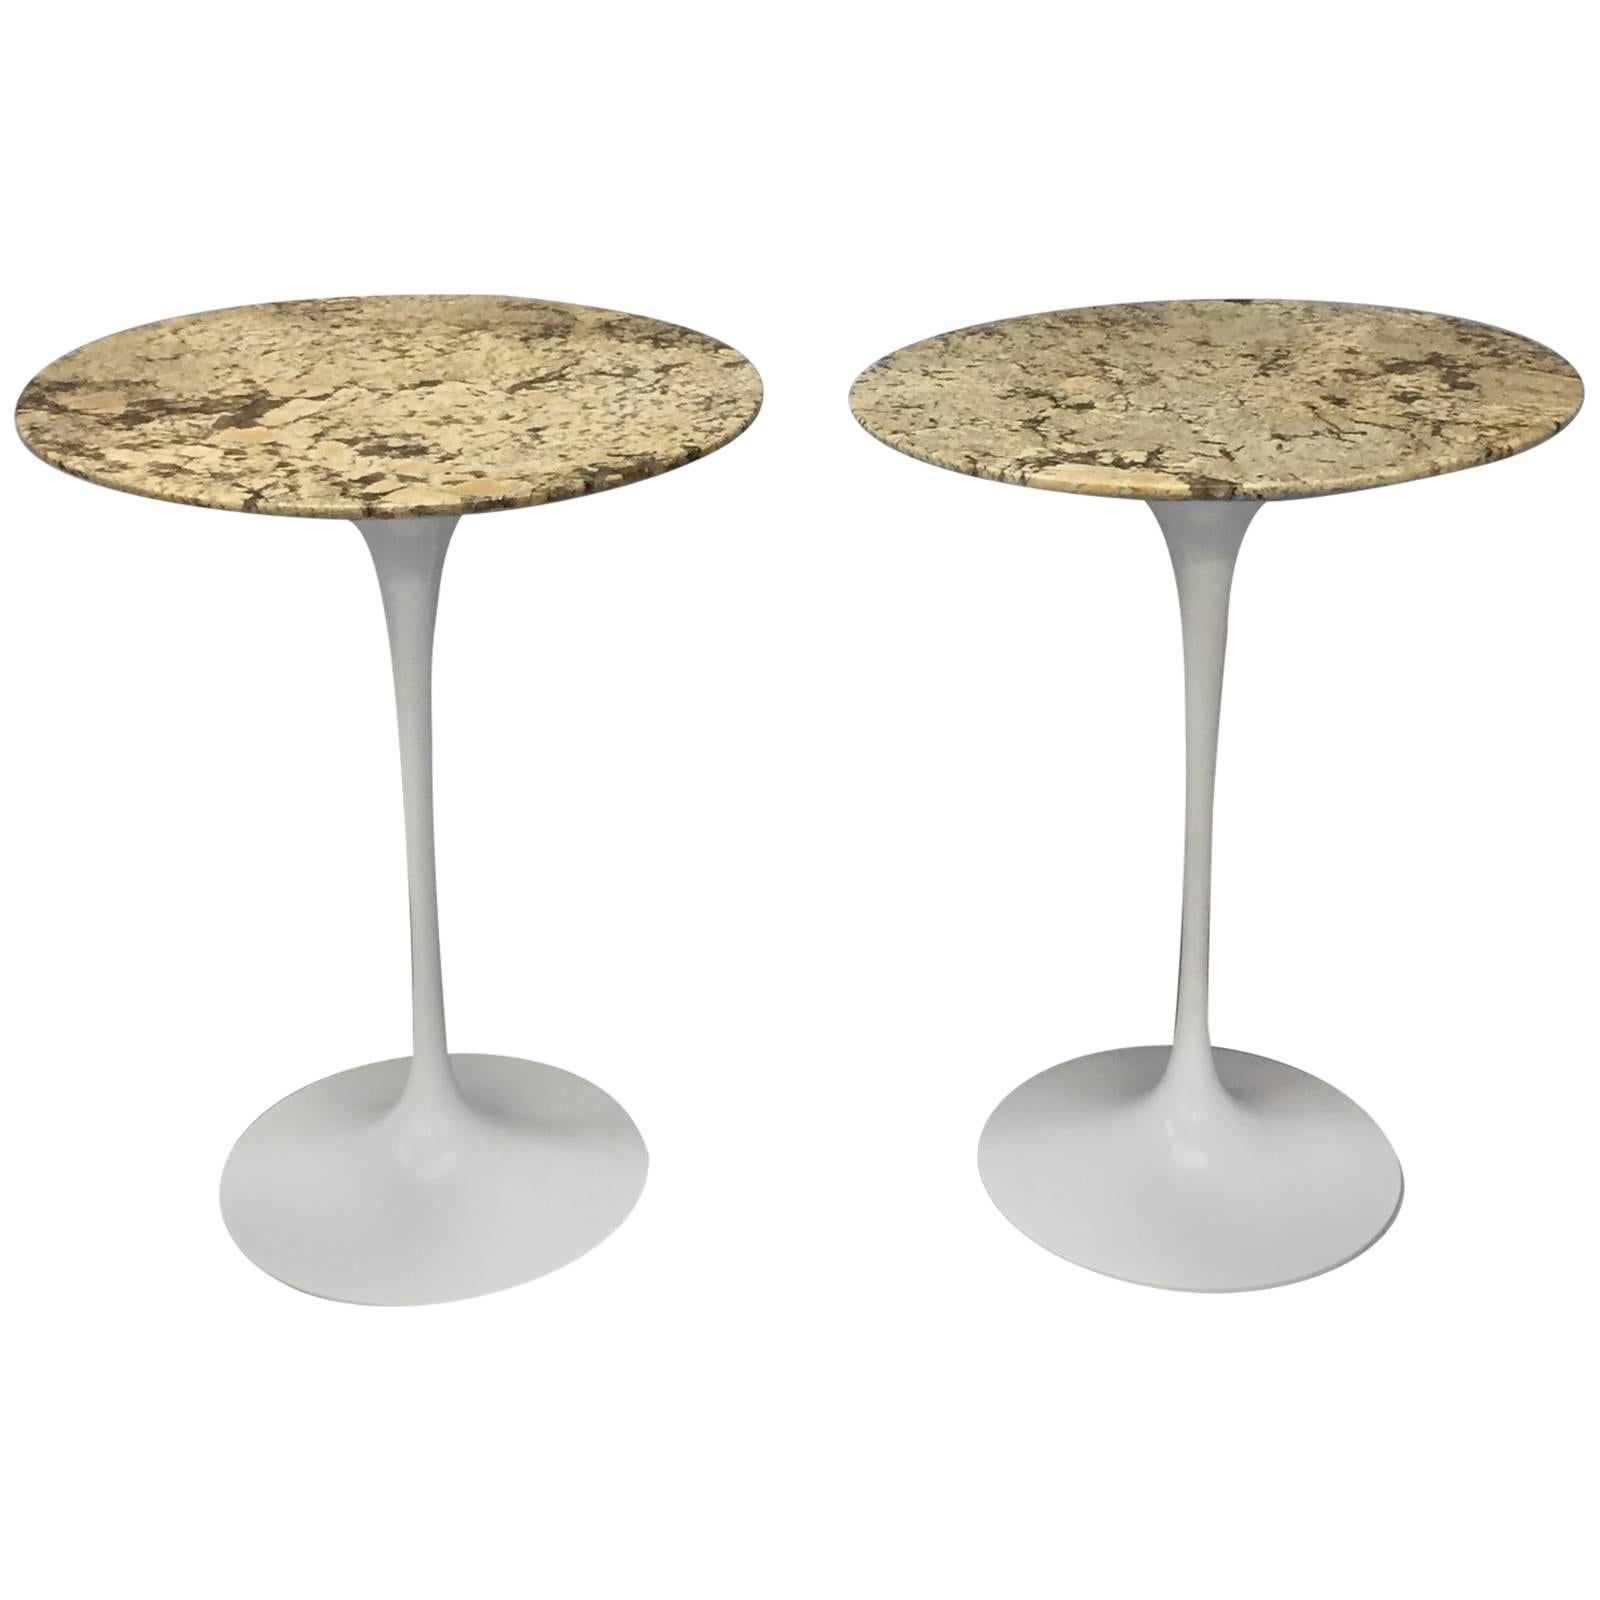 Tables Knoll Pair Of Custom Stone Top Early Iron Base Saarinen For Knoll Tulip Tables